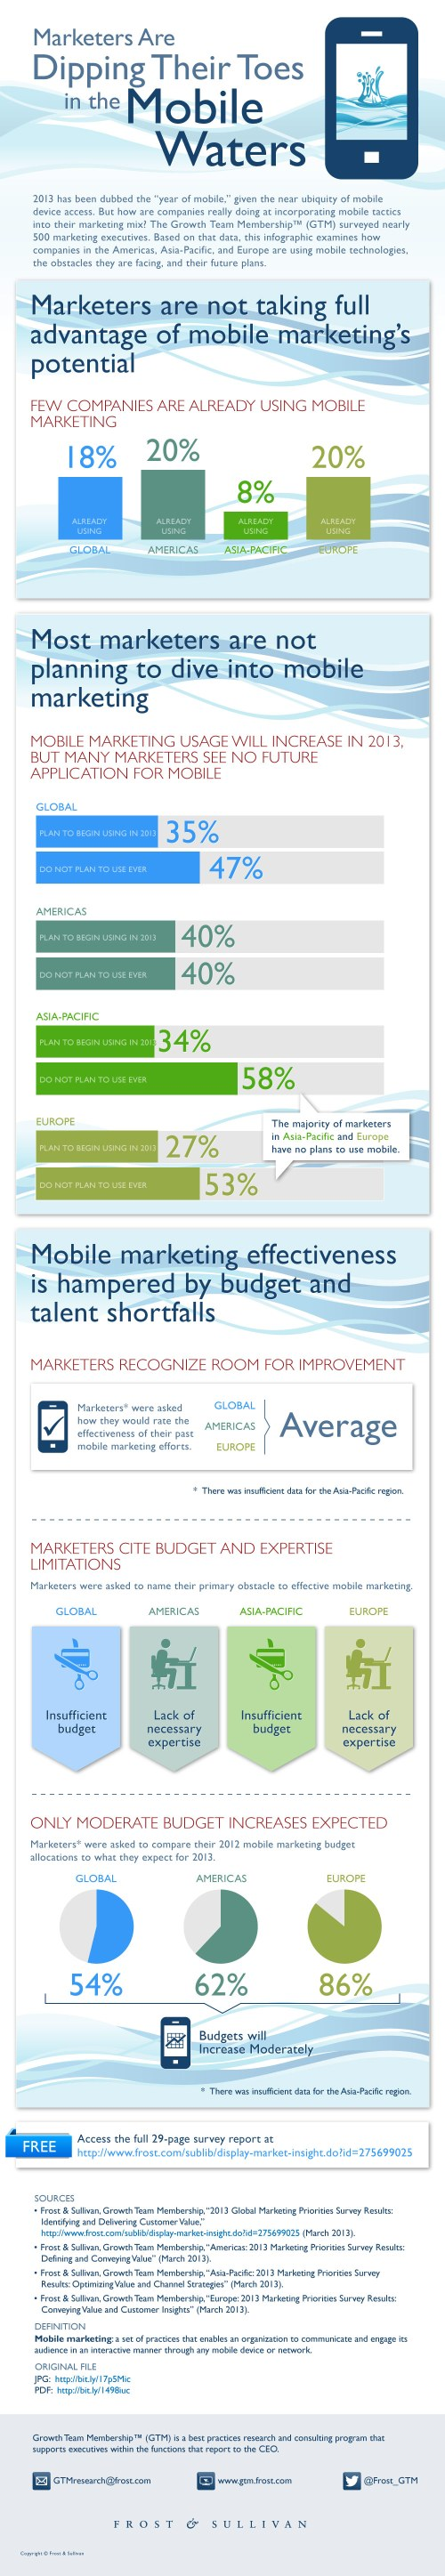 marketers-are-dipping-their-toes-in-the-mobile-waters_51648b80e5554